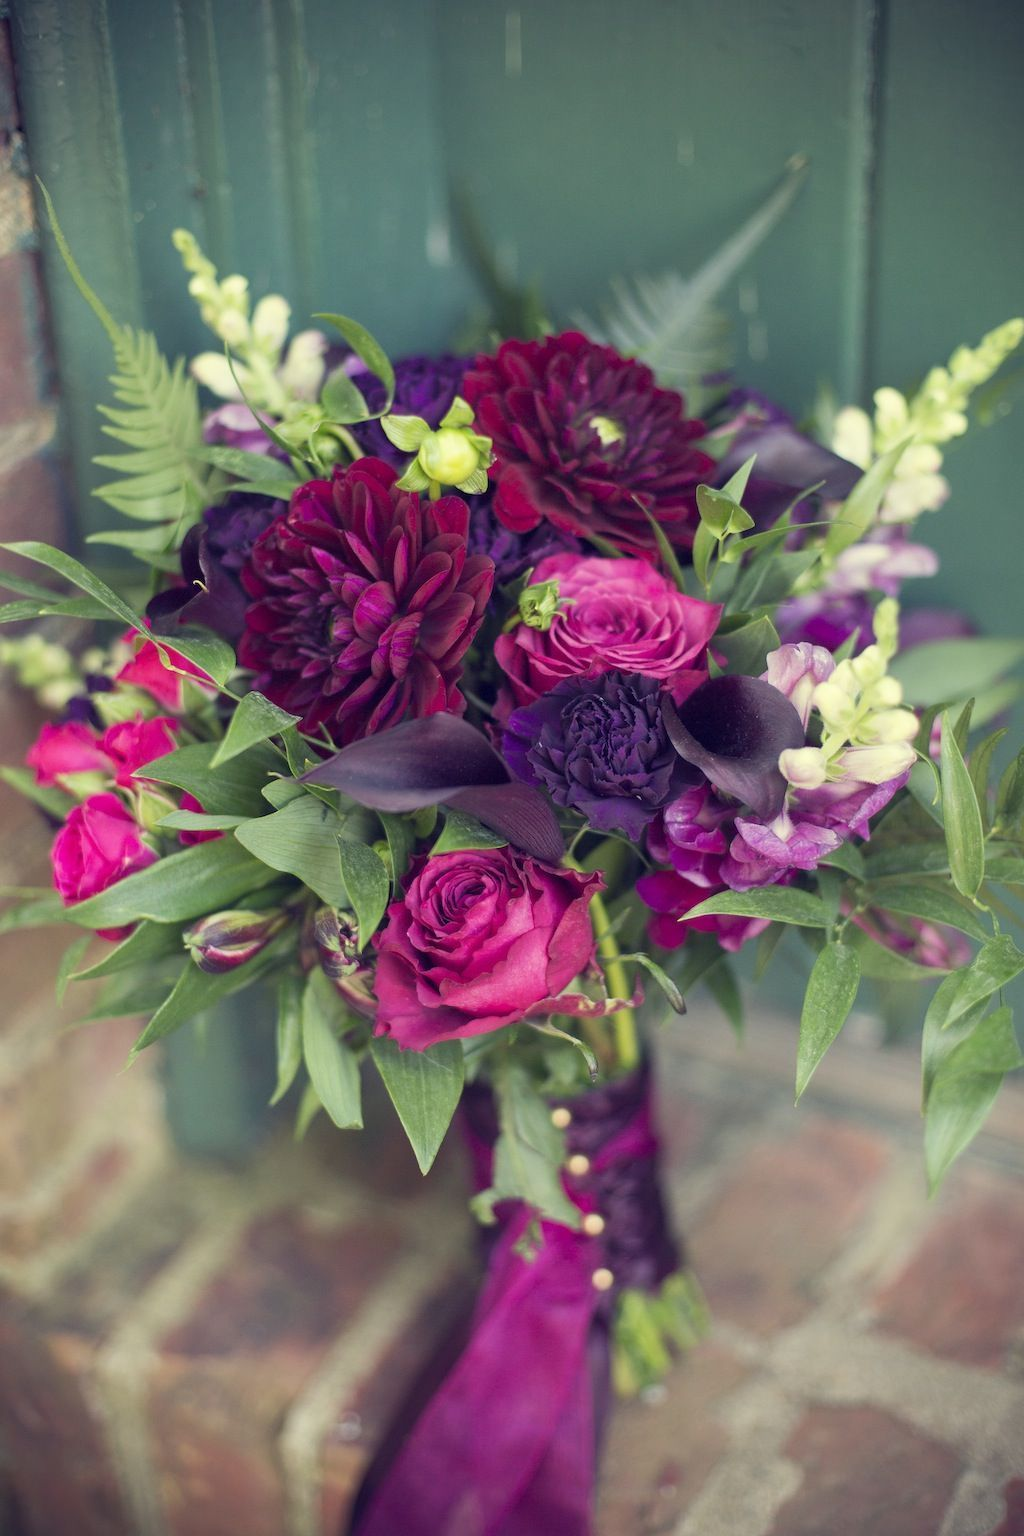 Love all the rich colors in this red purple hot pink and burgundy love all the rich colors in this red purple hot pink and burgundy wedding flower bouquet photograph by pamela lepold photography izmirmasajfo